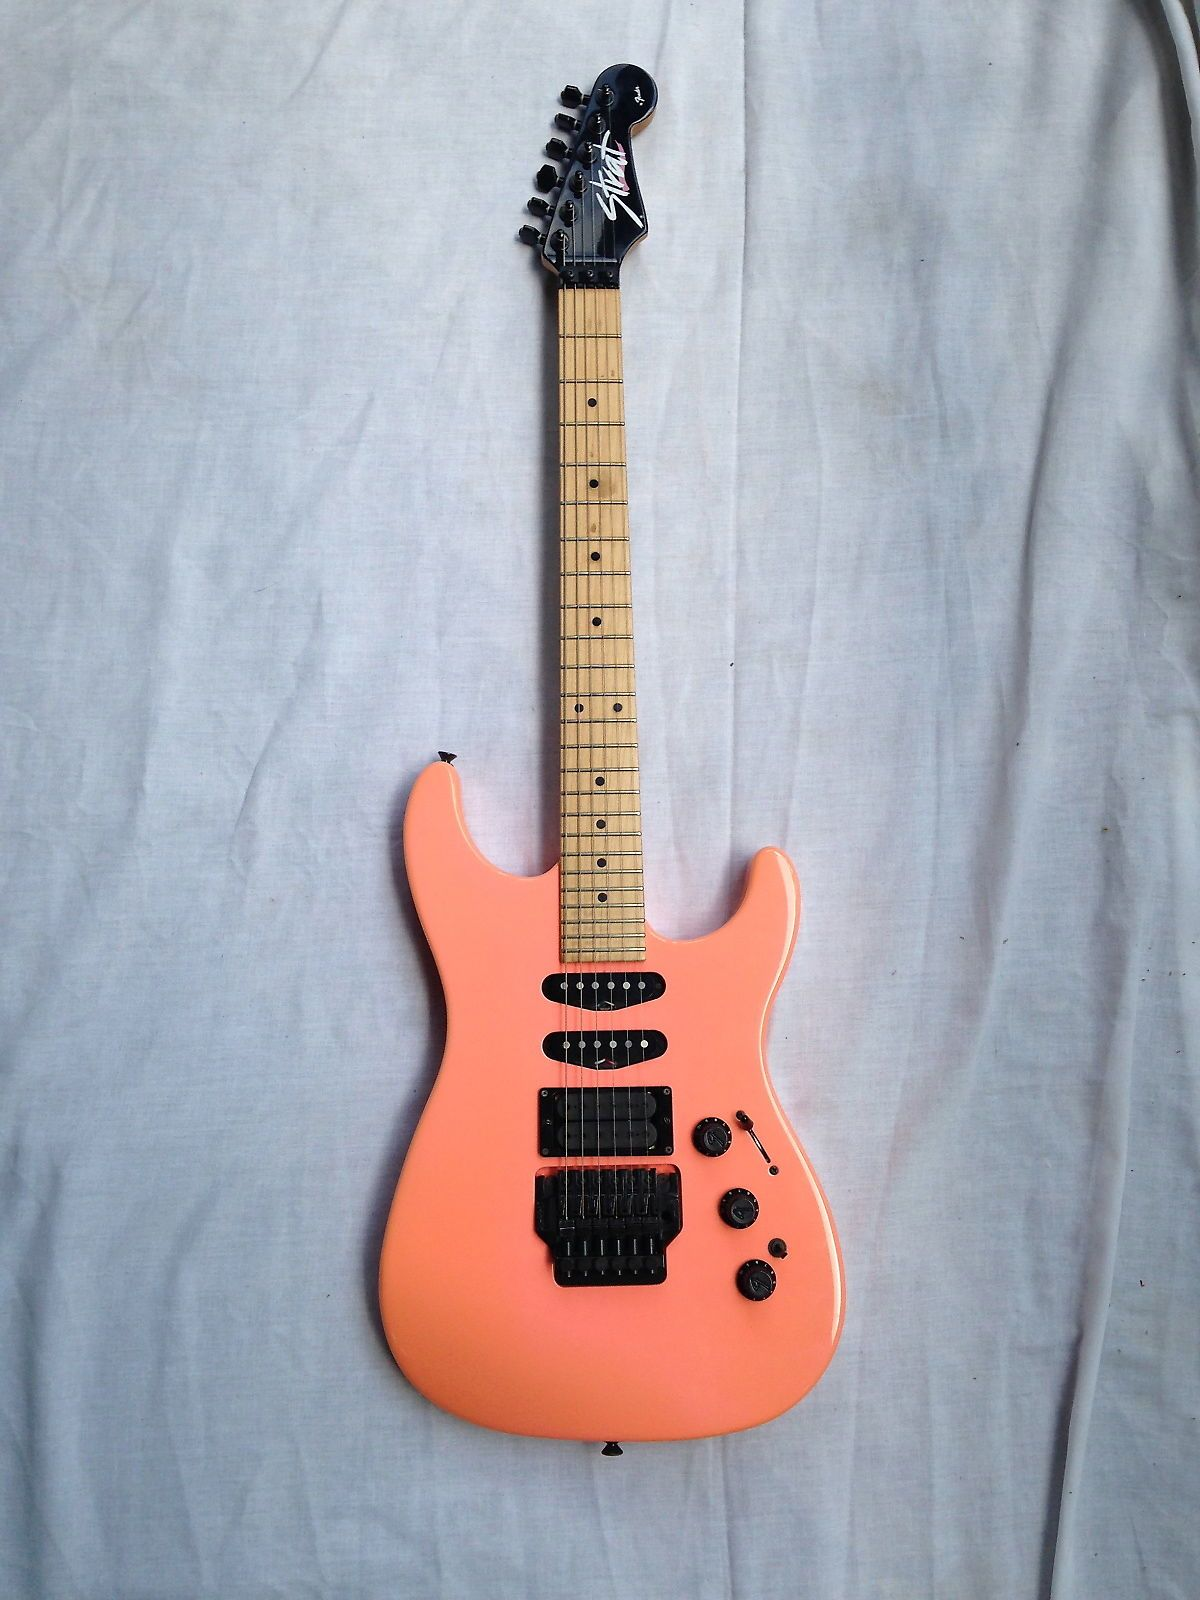 Fender Hm Strat 1989 Salmon In 2018 Pinterest Fret Gitar Jumbo Heeey This Is A Excellent Condition I Do Have The Original Tremolo Arm Just Forgot To Put It On For Pictures